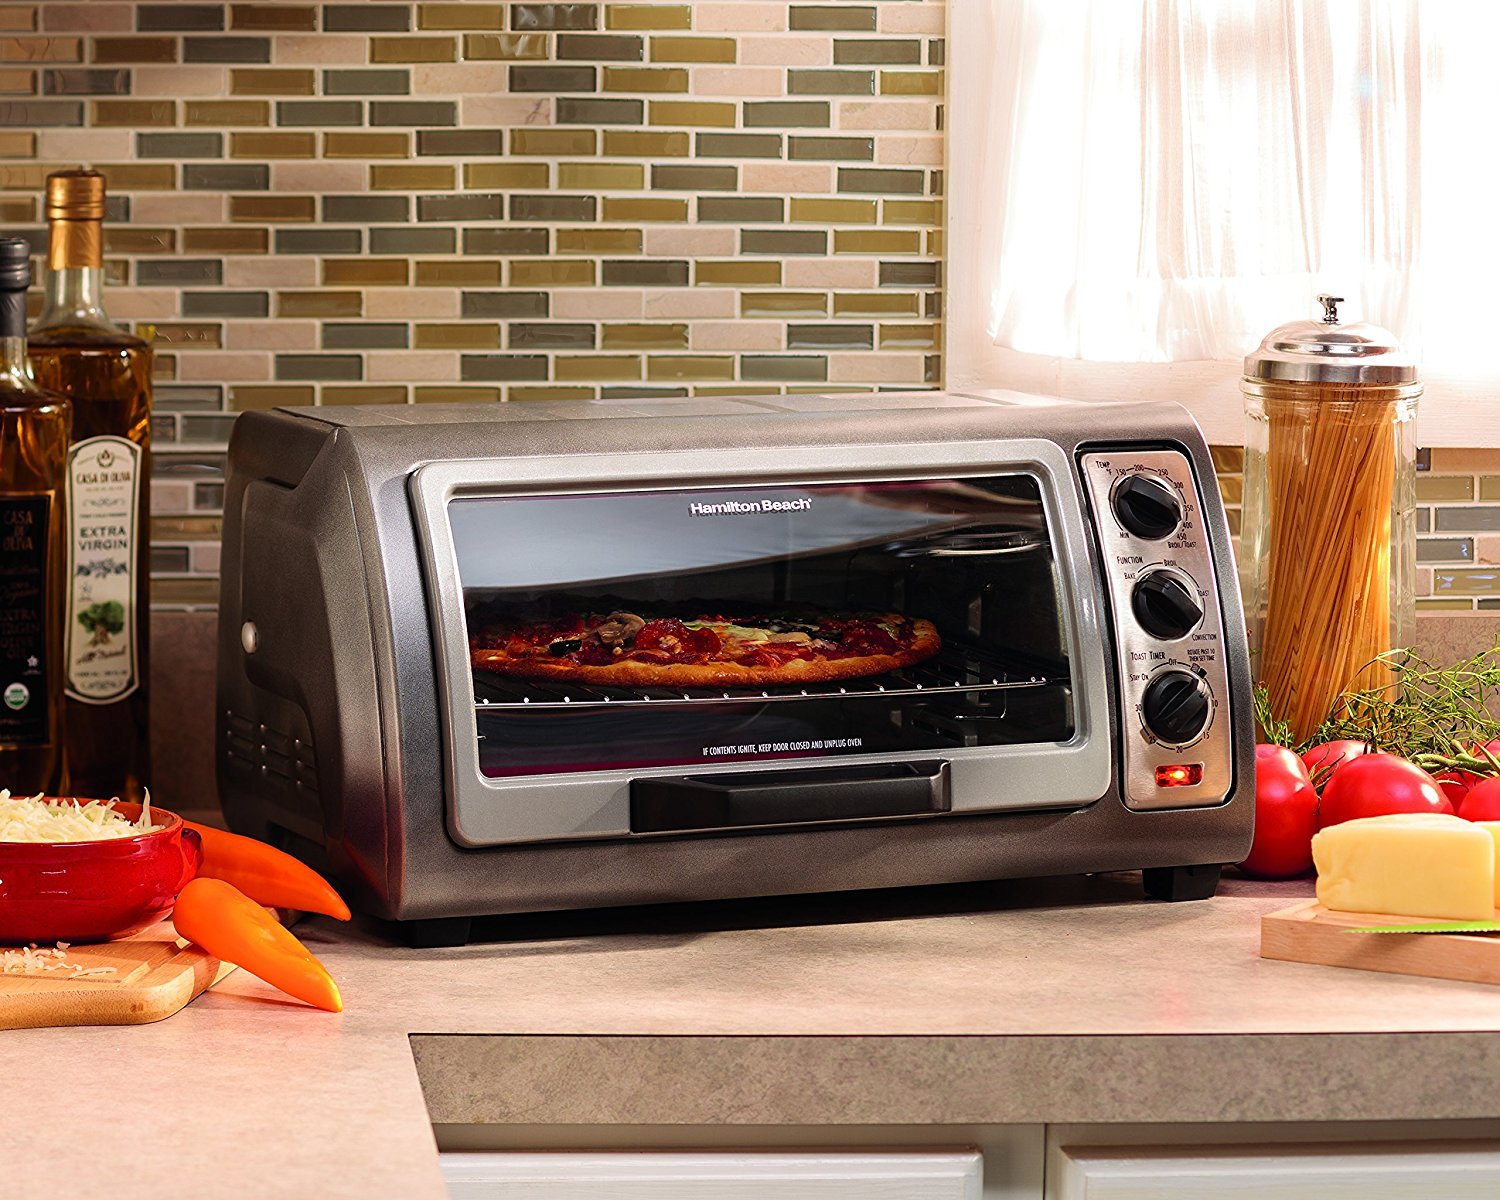 Top 15 Best Toaster Oven- Unbiased Reviews & Buyer's Guide 2020